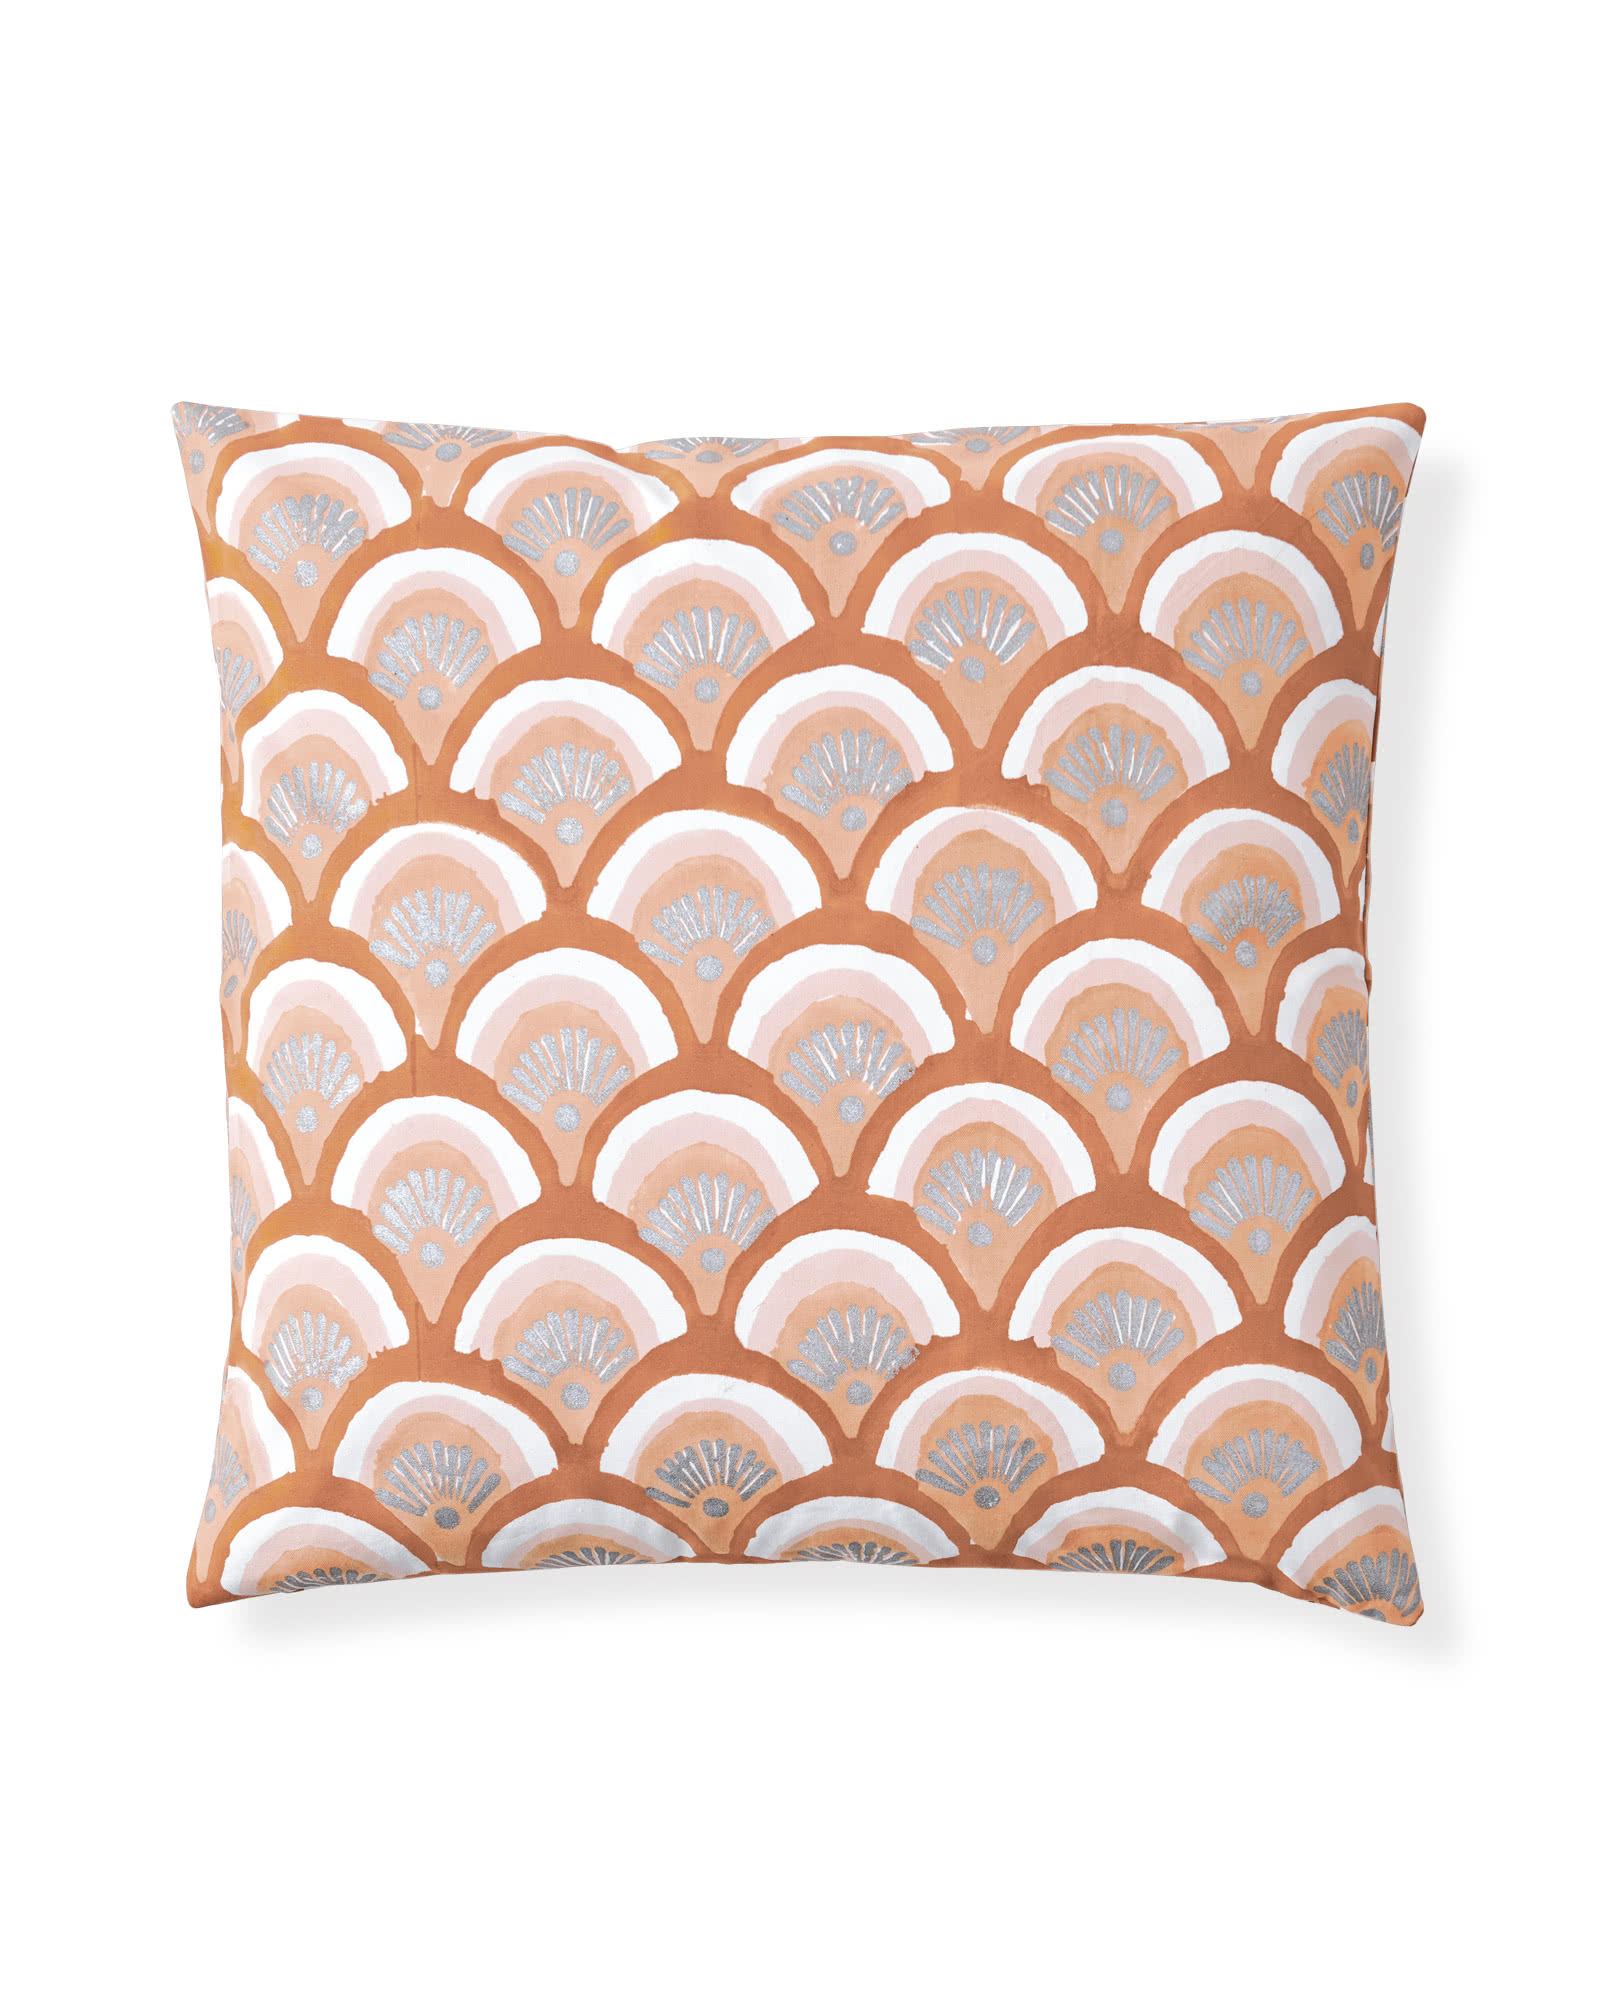 Kyoto Pillow Cover